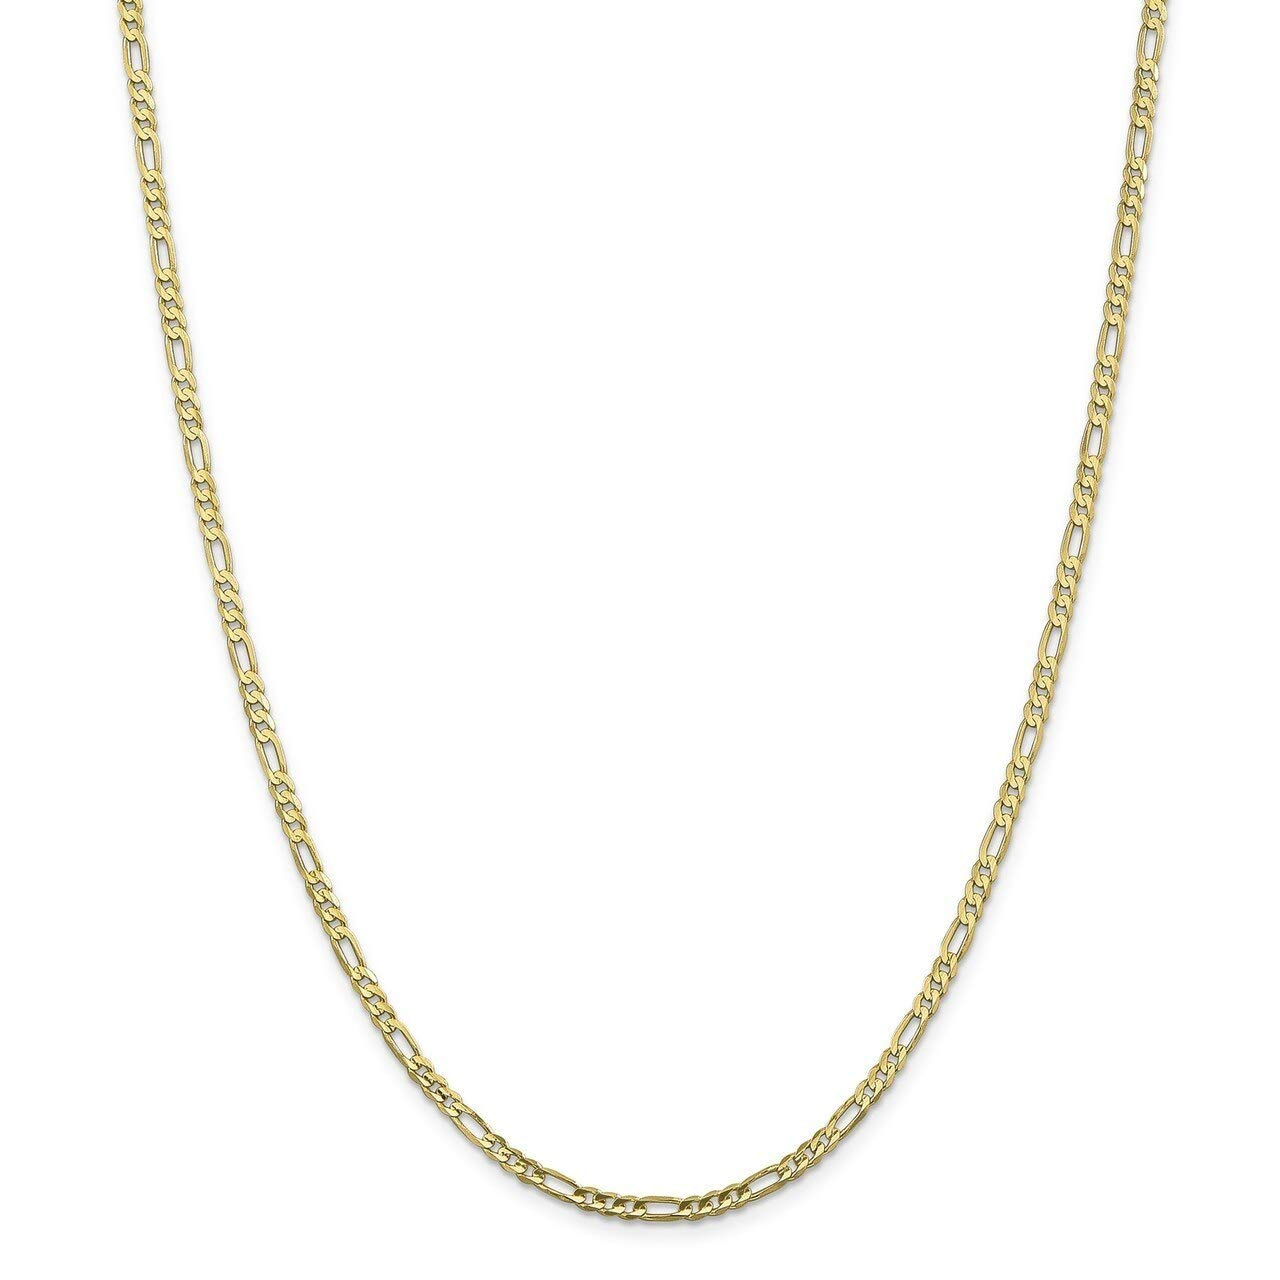 Lex /& Lu 10k Yellow Gold 3.0mm Figaro Chain Necklace or Bracelet